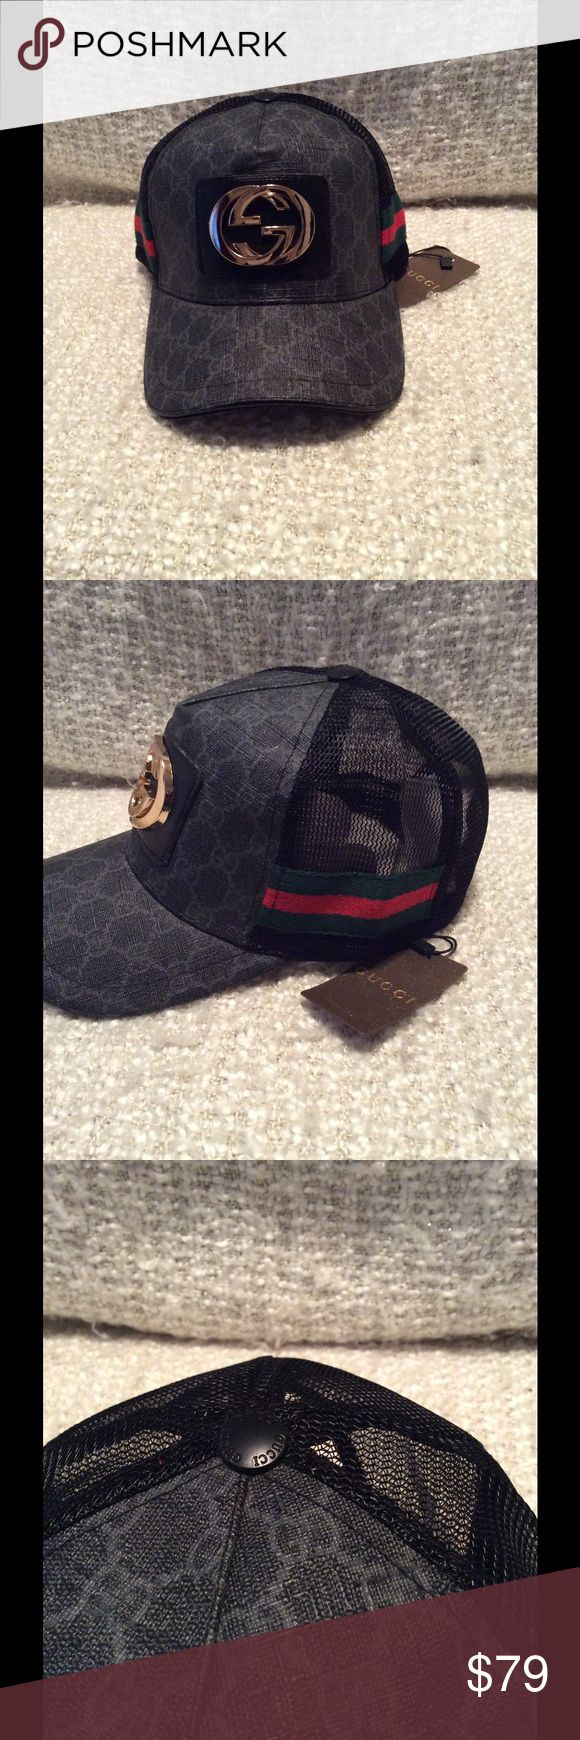 Gucci hat Gucci hat new with tag Gucci Accessories Hats